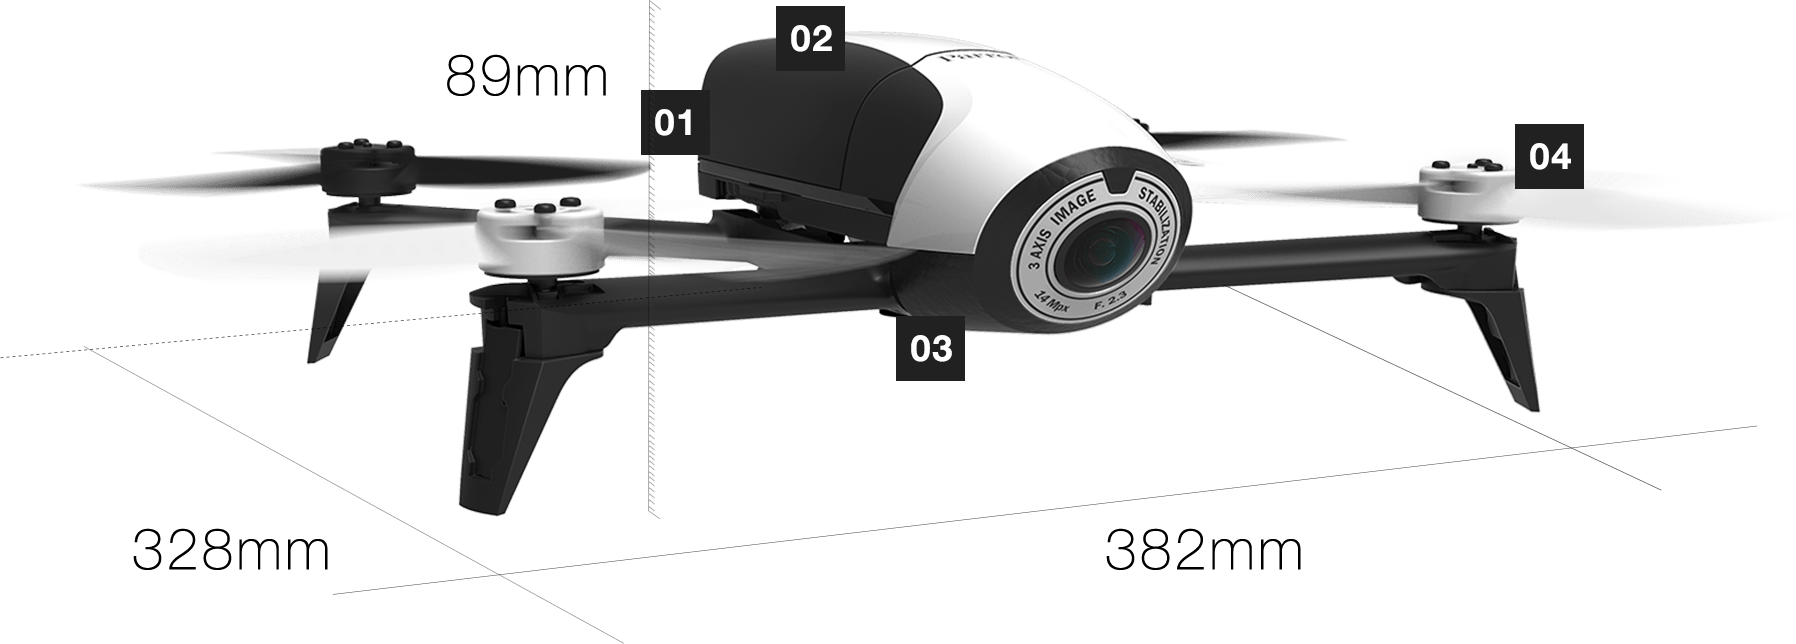 Parrot Bebop 2 Product Spec